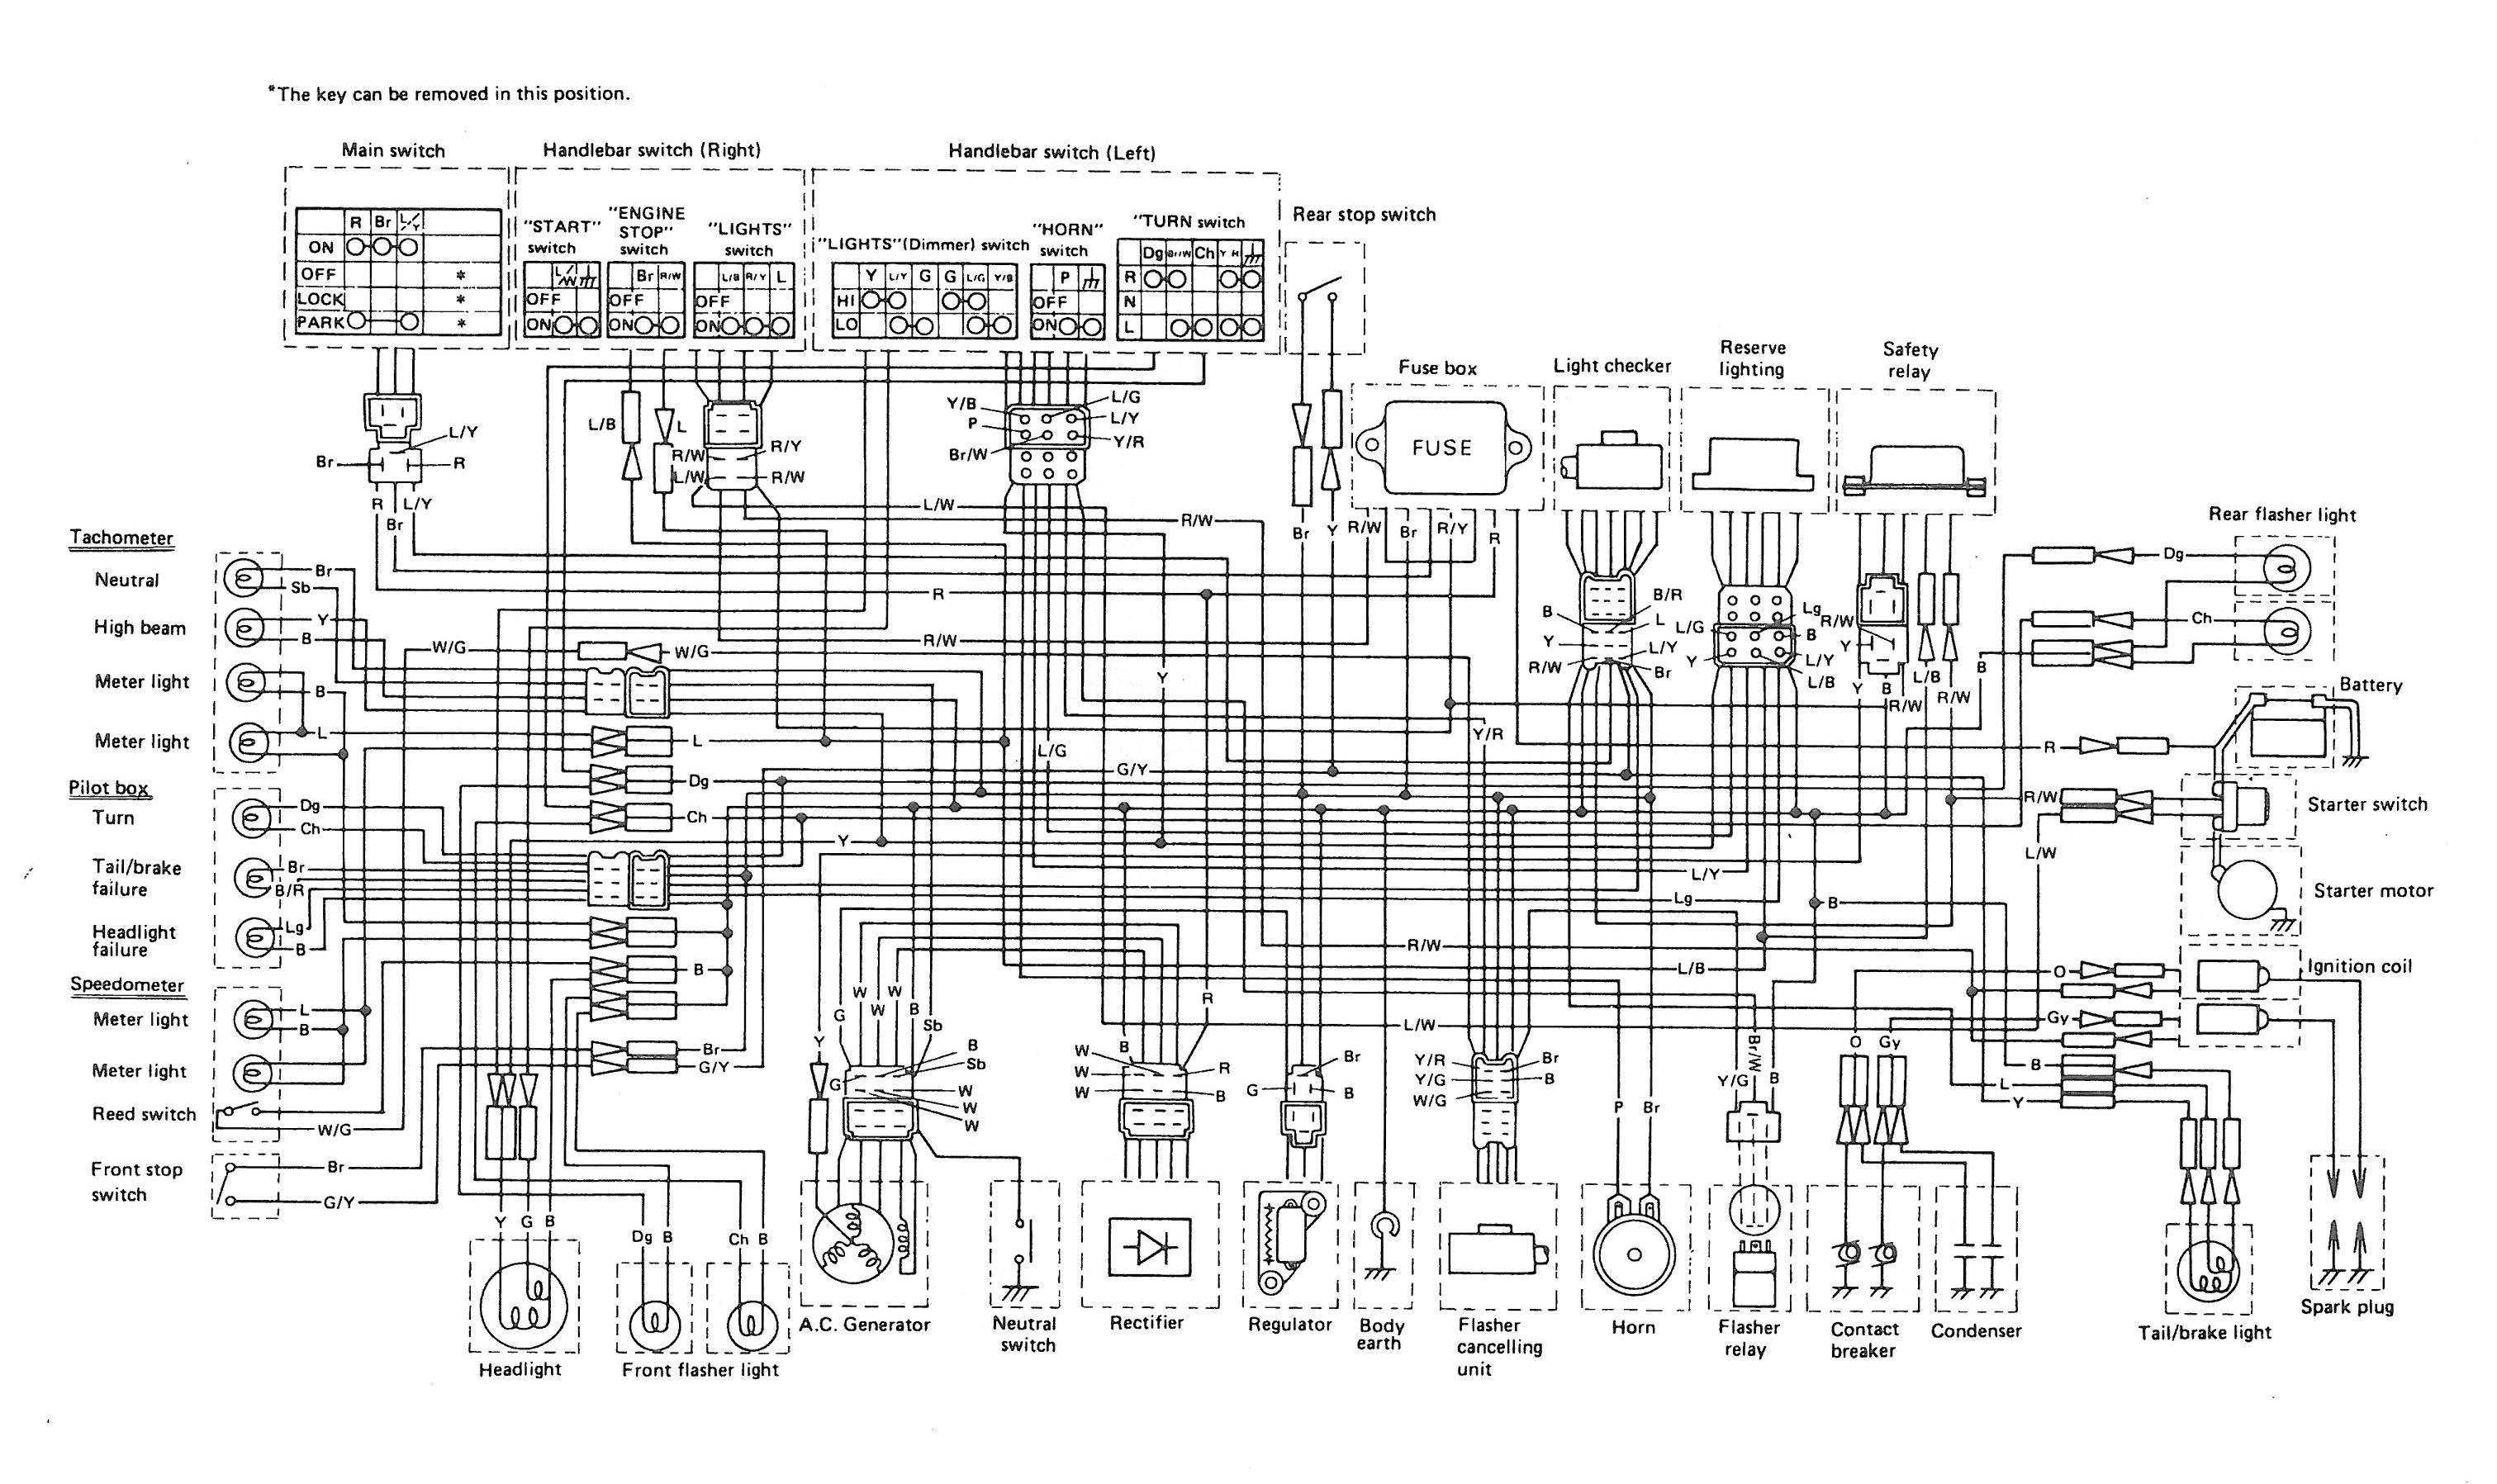 1978 Thexscafe Diagram Motorcycle Engine Art 78 Xs Se Wiring